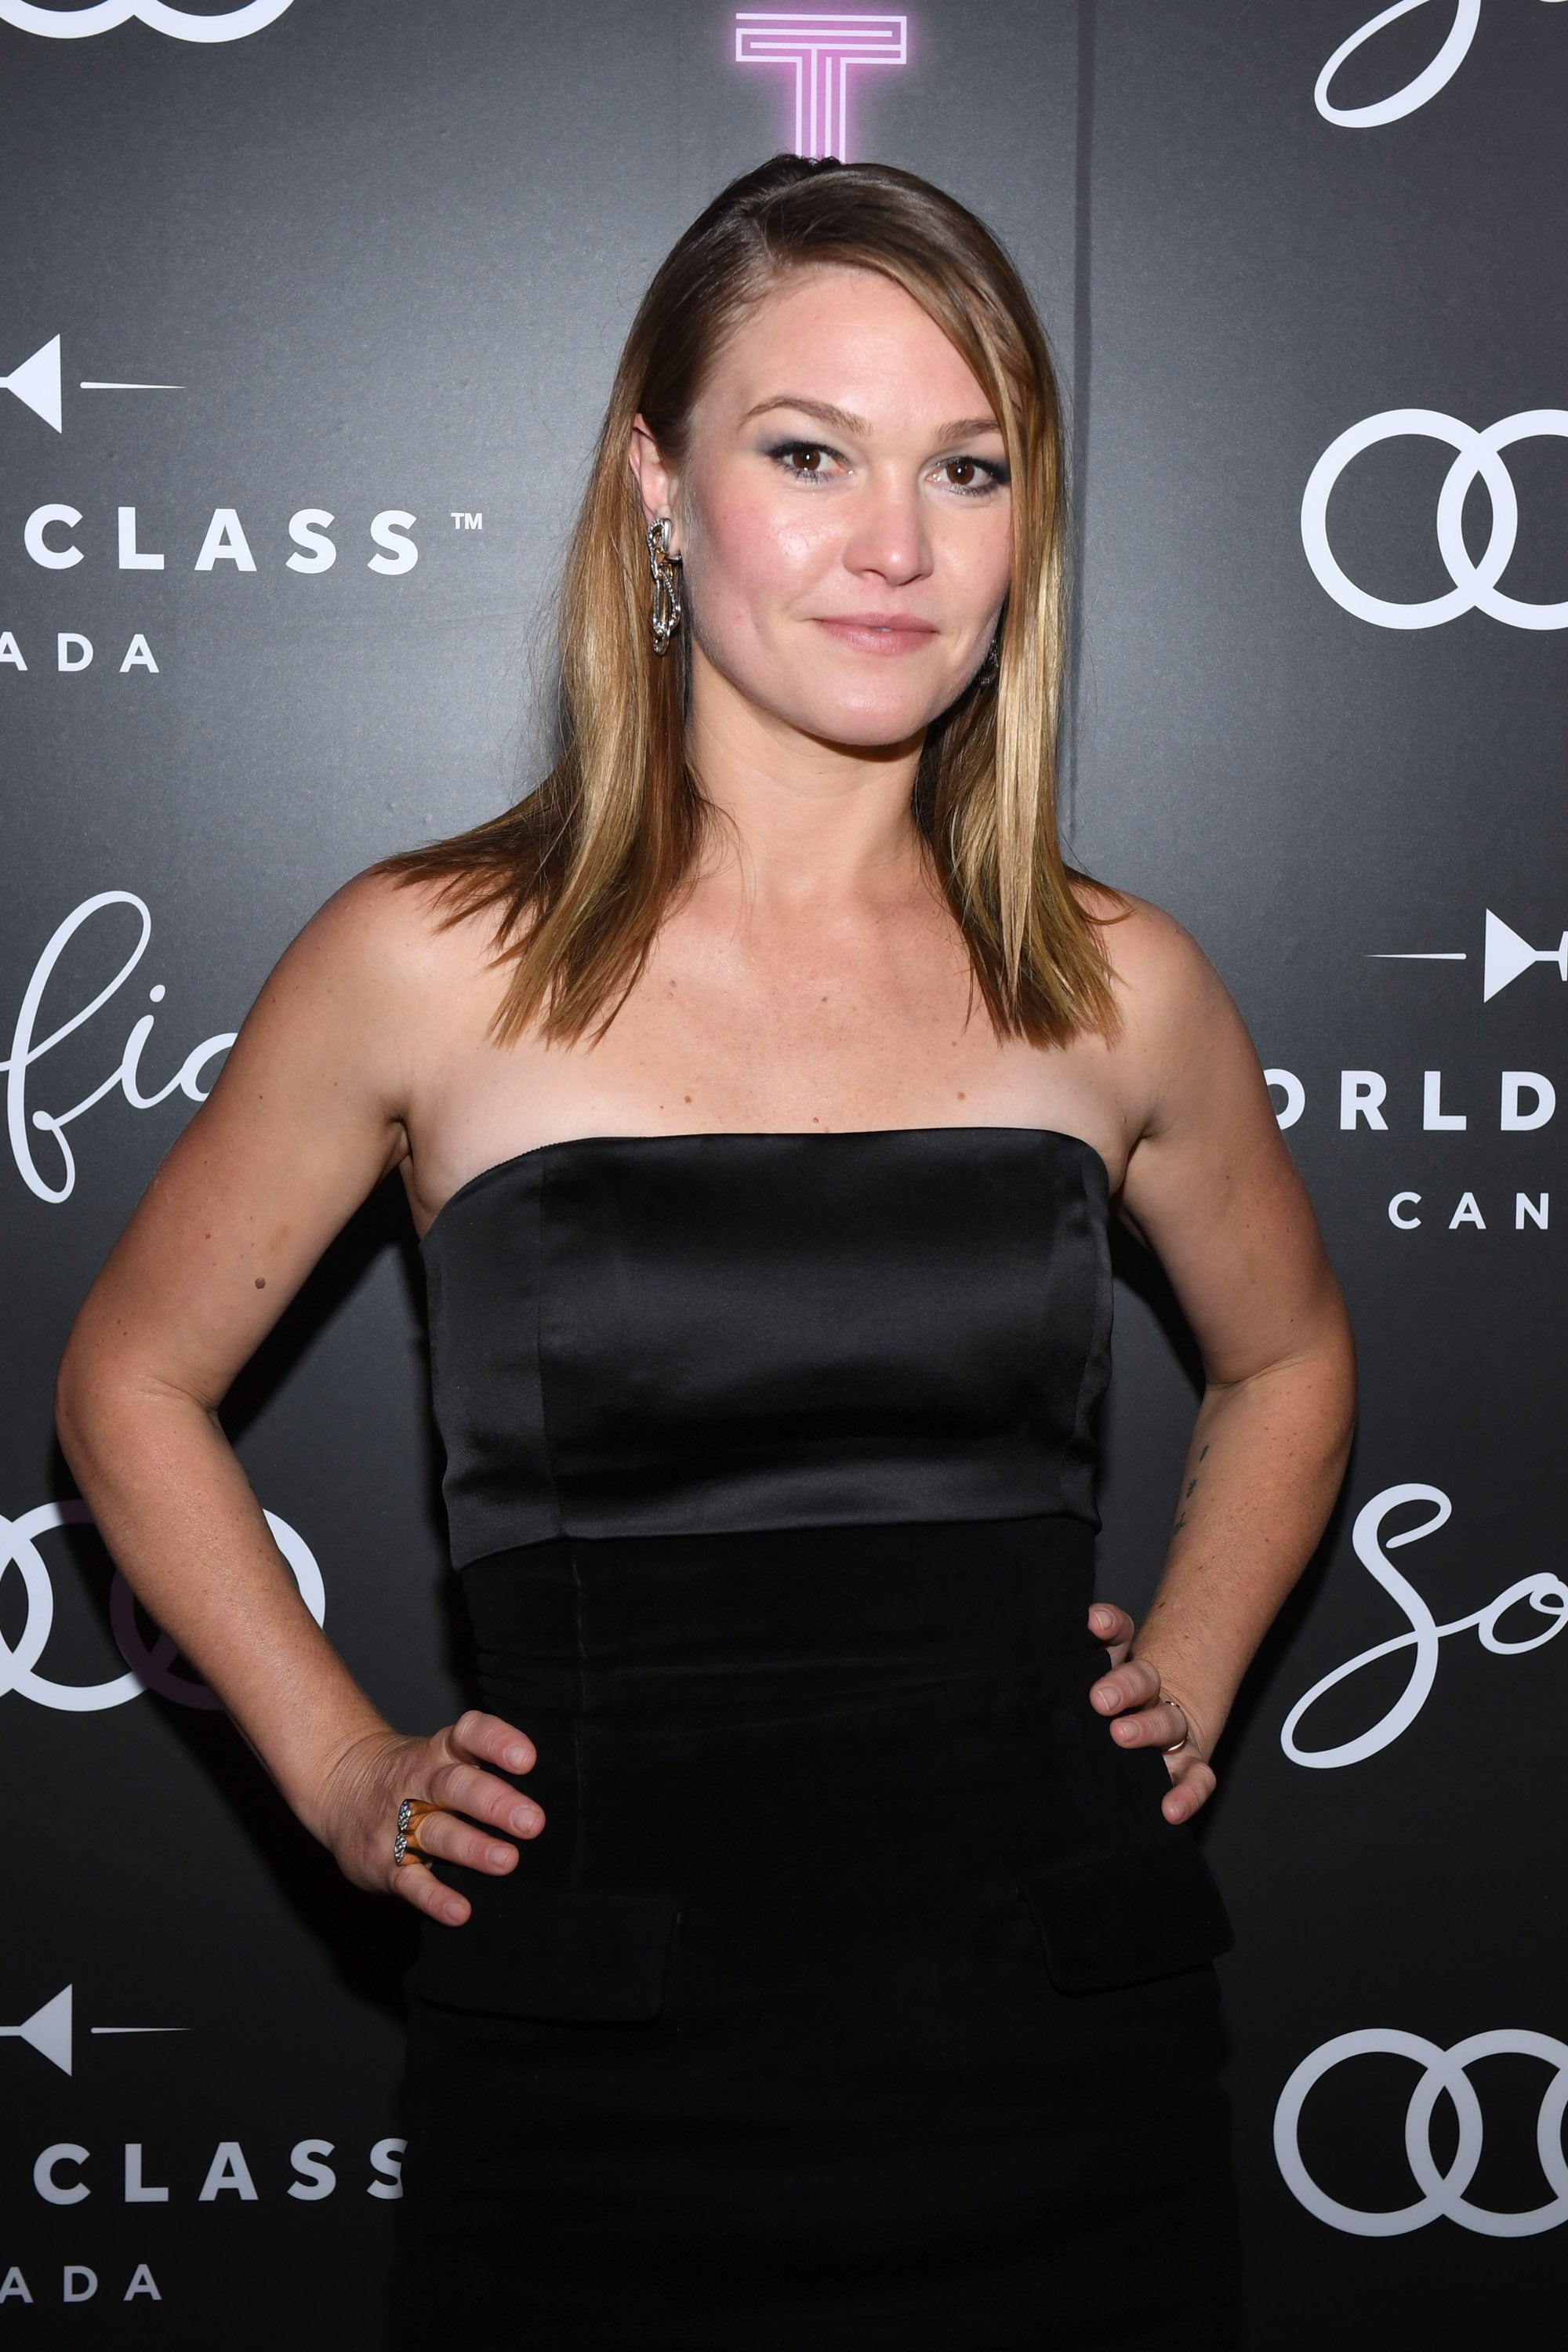 Julia Stiles At The Hustlers Premiere In Toronto The Cast